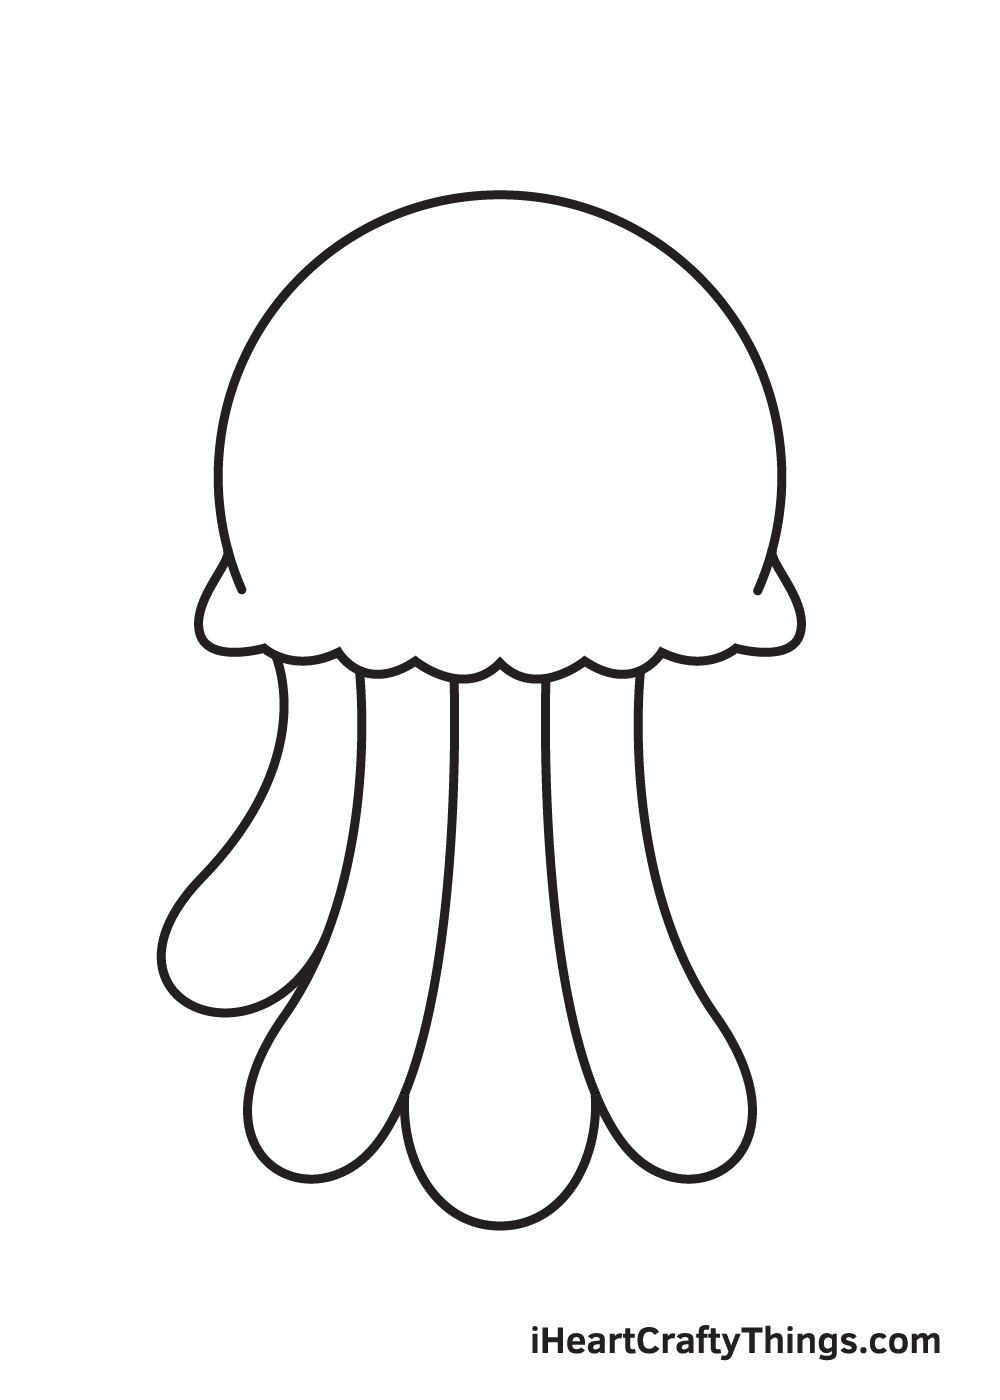 jellyfish drawing step 6